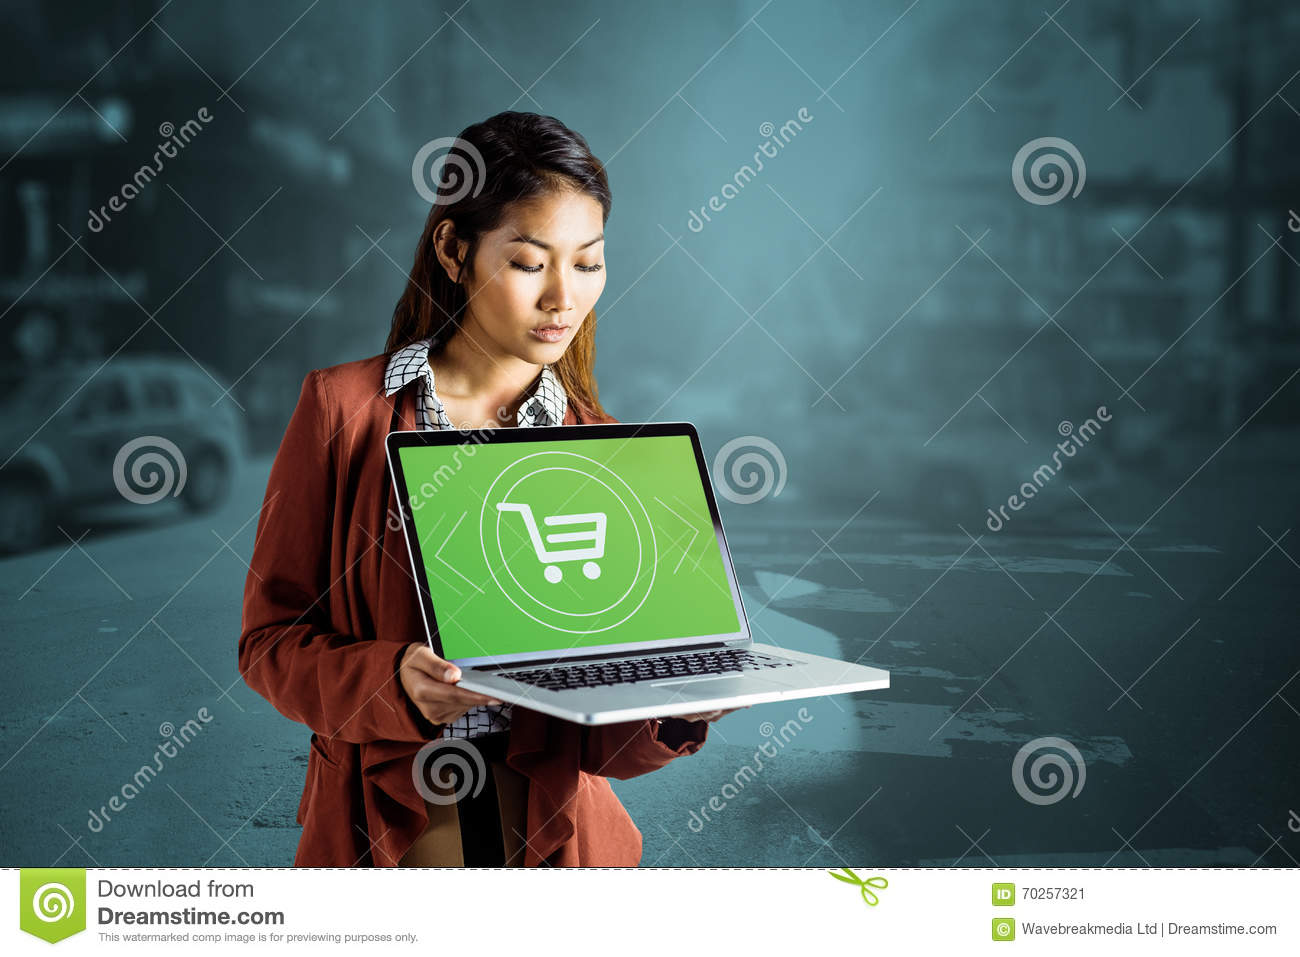 Composite image of smiling businesswoman showing a laptop